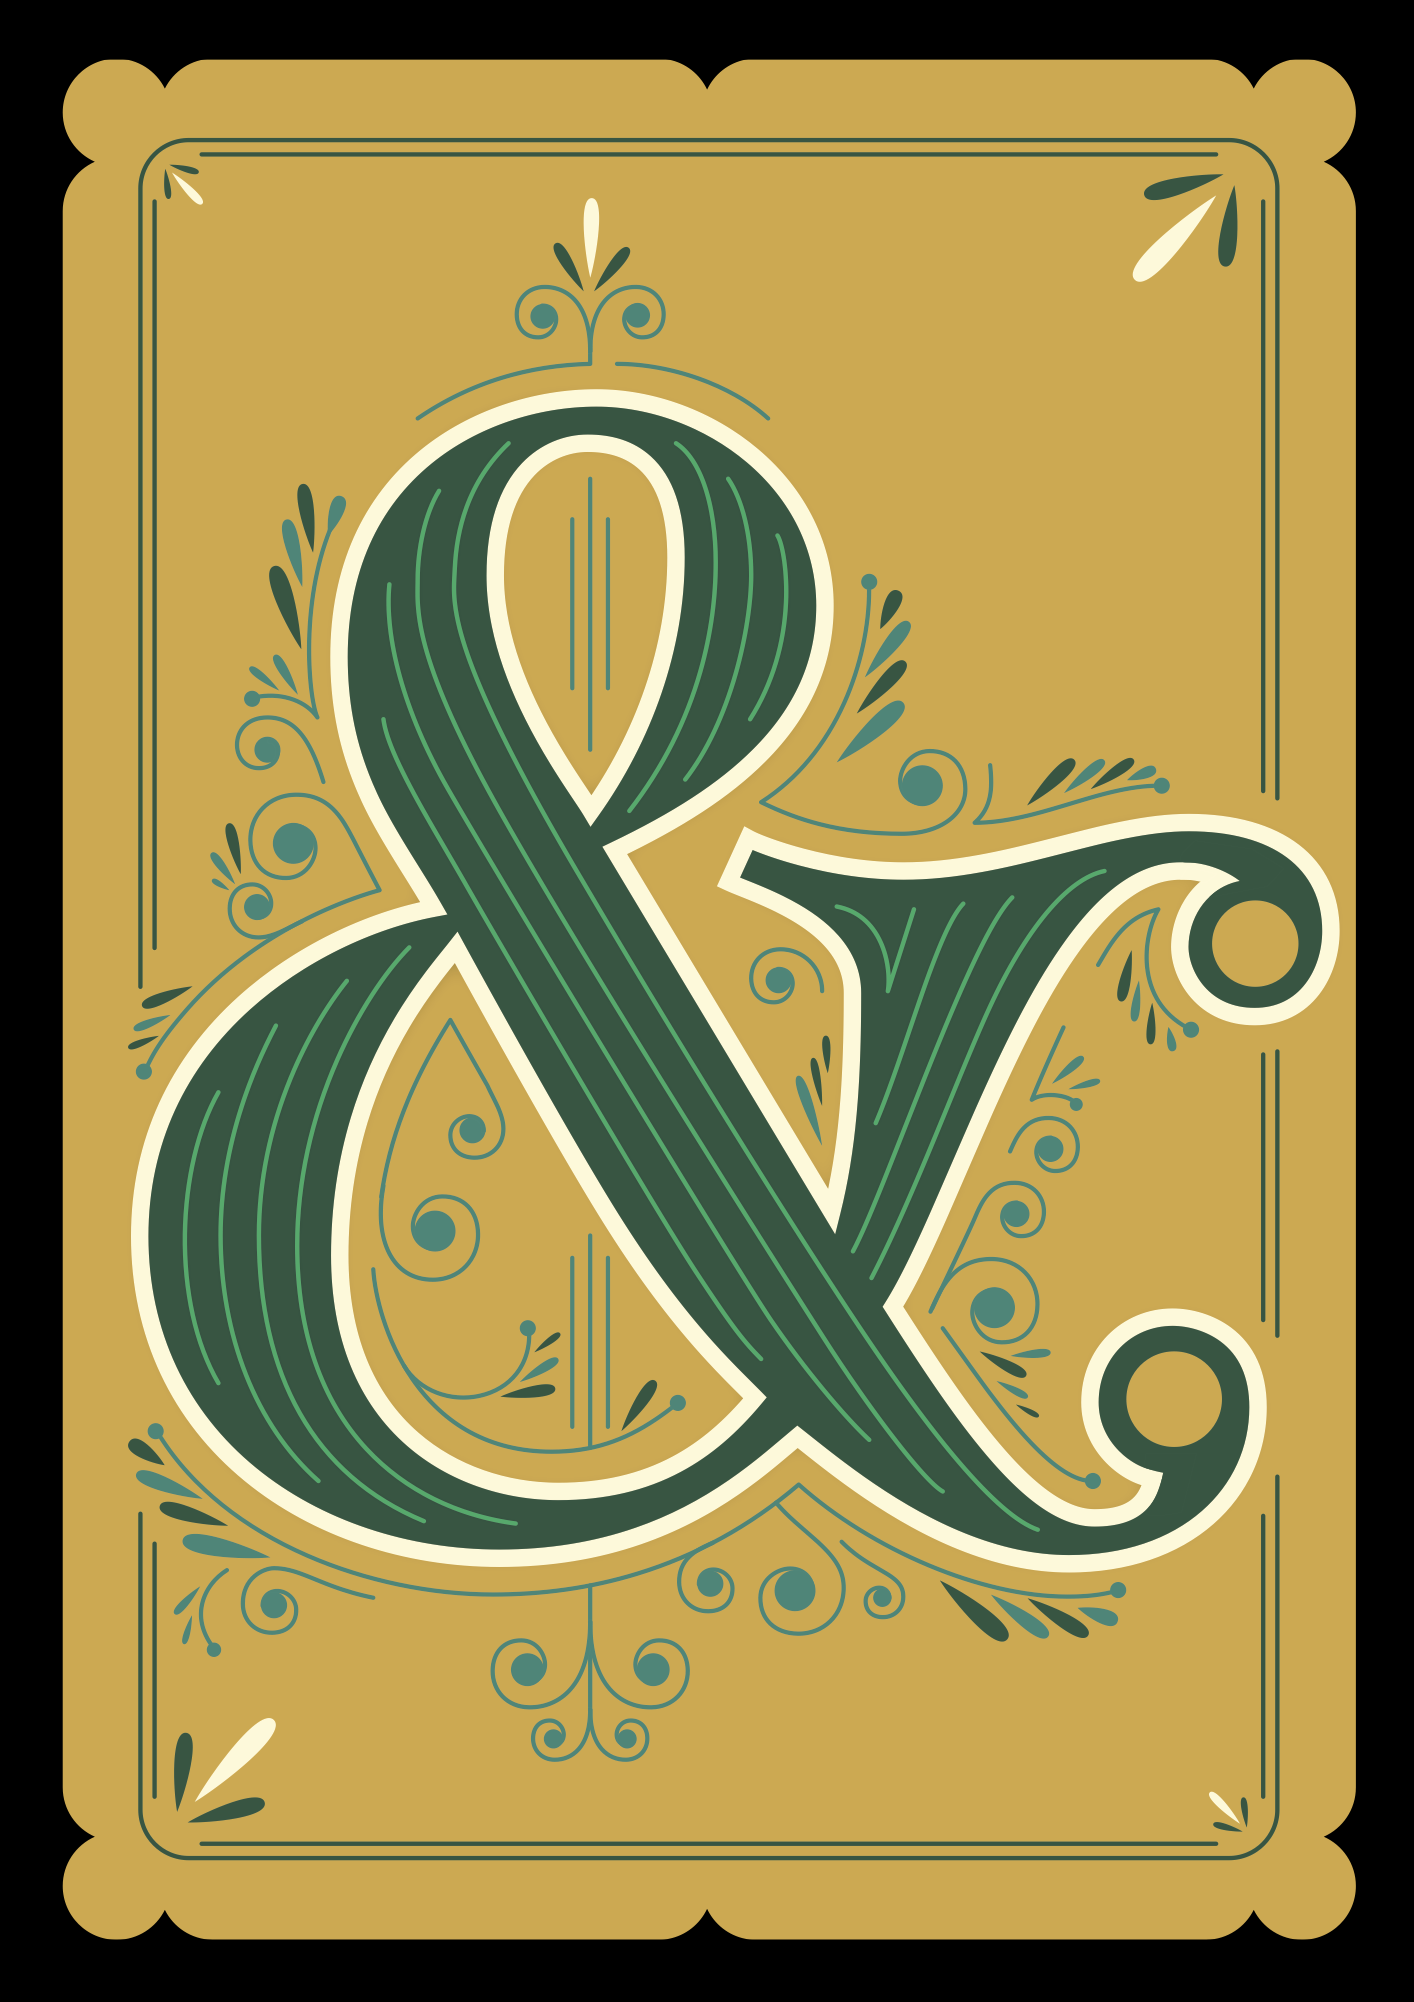 Ampersand design by Martina Flor